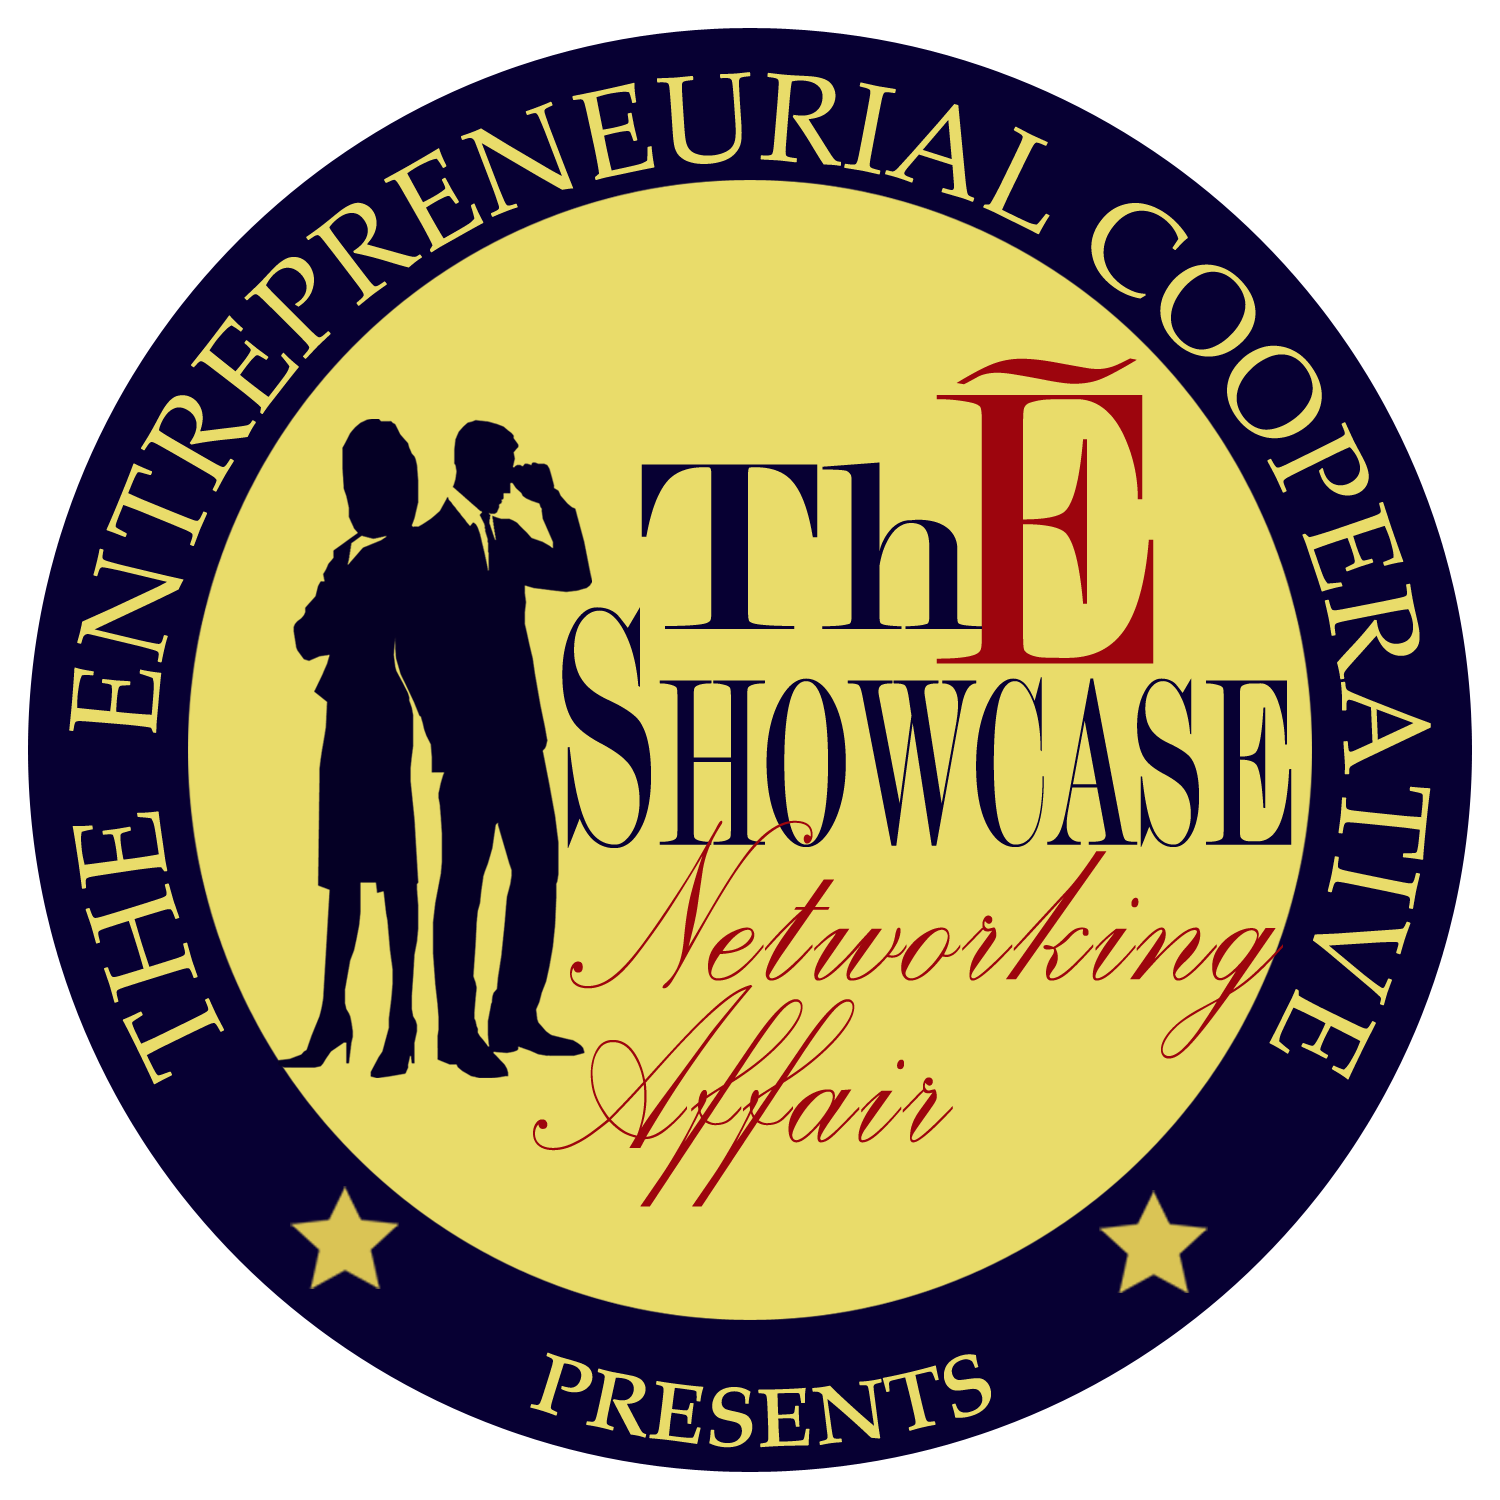 The Showcase Networking Affair